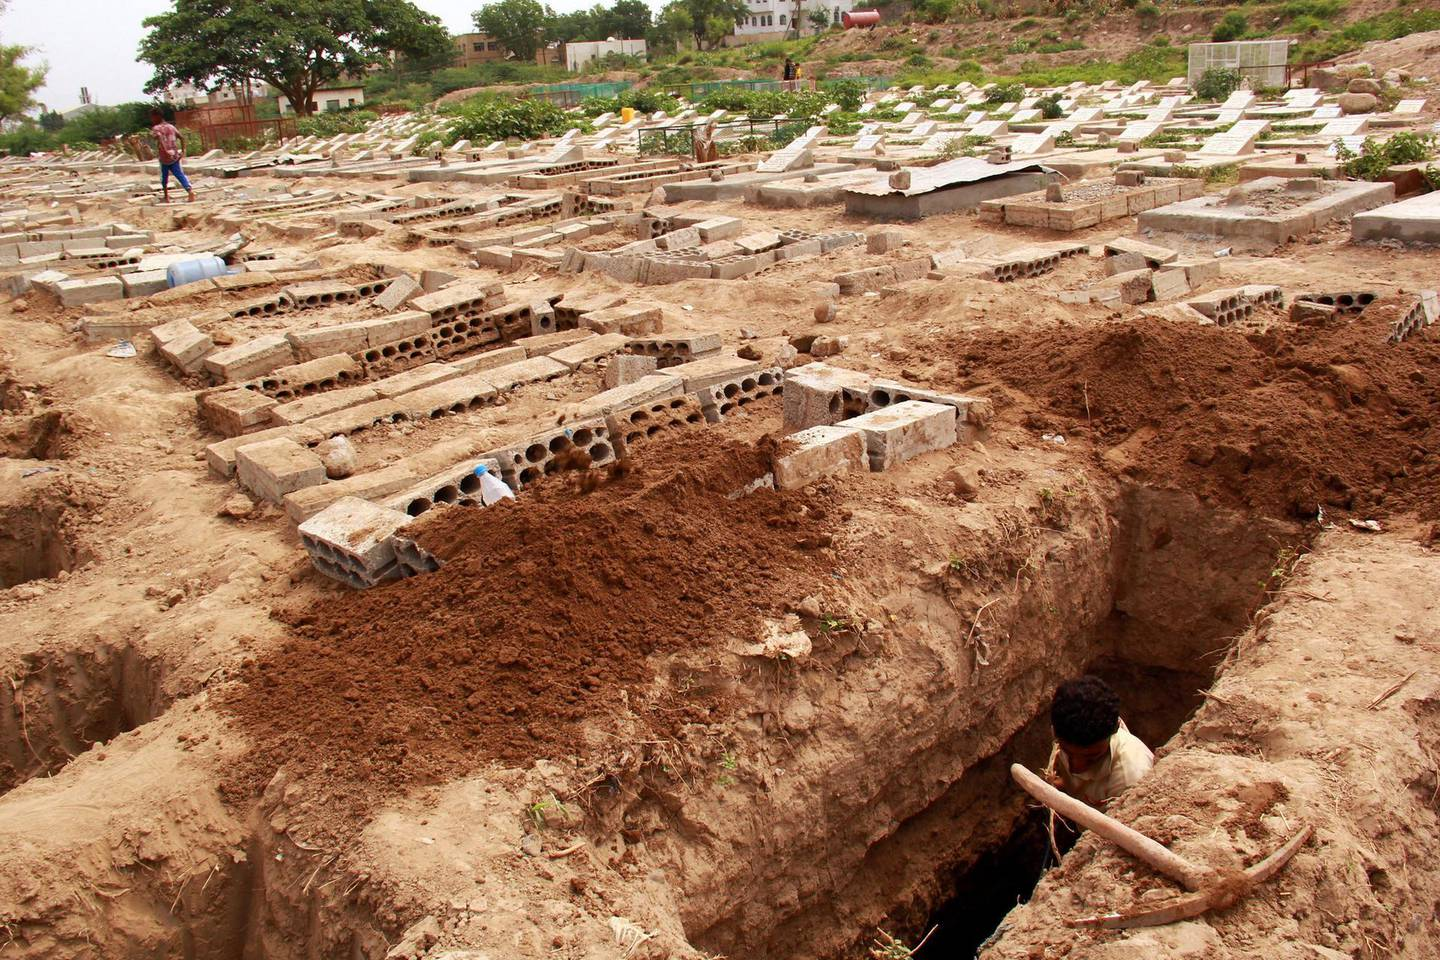 FILE PHOTO: A man digs a grave at a cemetery where victims of the coronavirus disease (COVID-19) are buried in Taiz, Yemen June 23, 2020. Picture taken June 23, 2020. REUTERS/Anees Mahyoub/File Photo